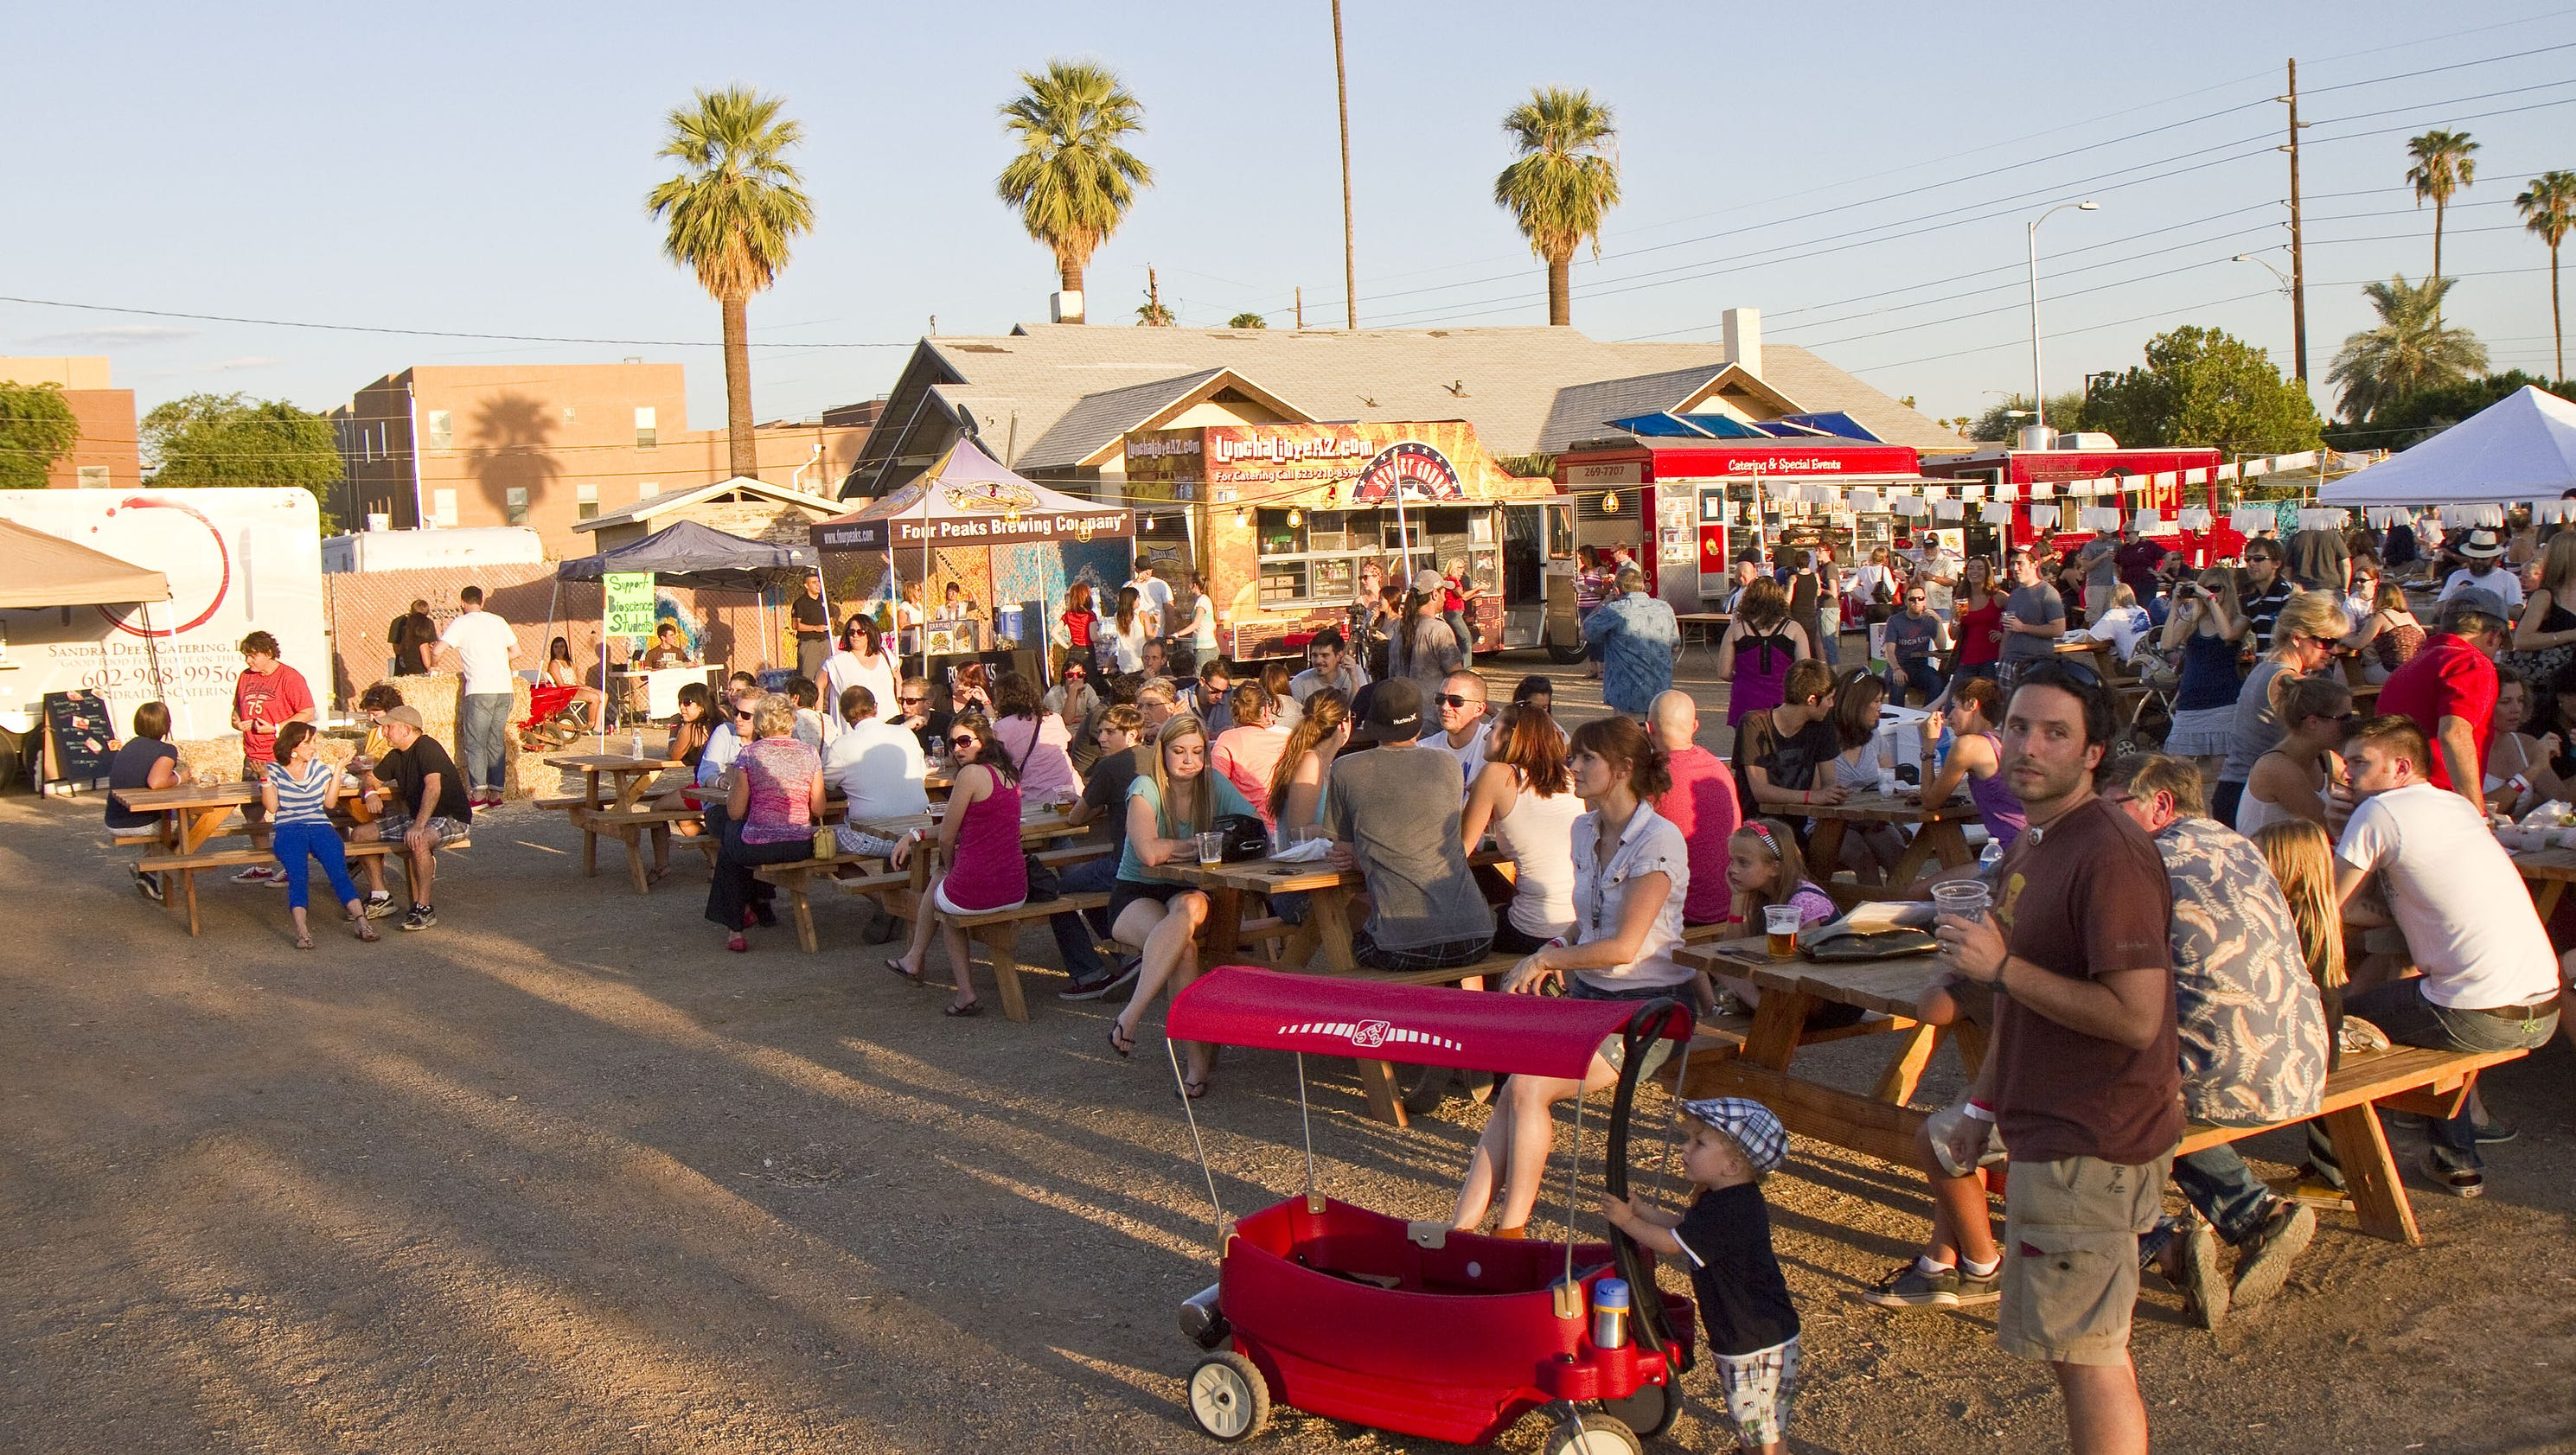 Chile Pepper Festival fires it up in Phoenix